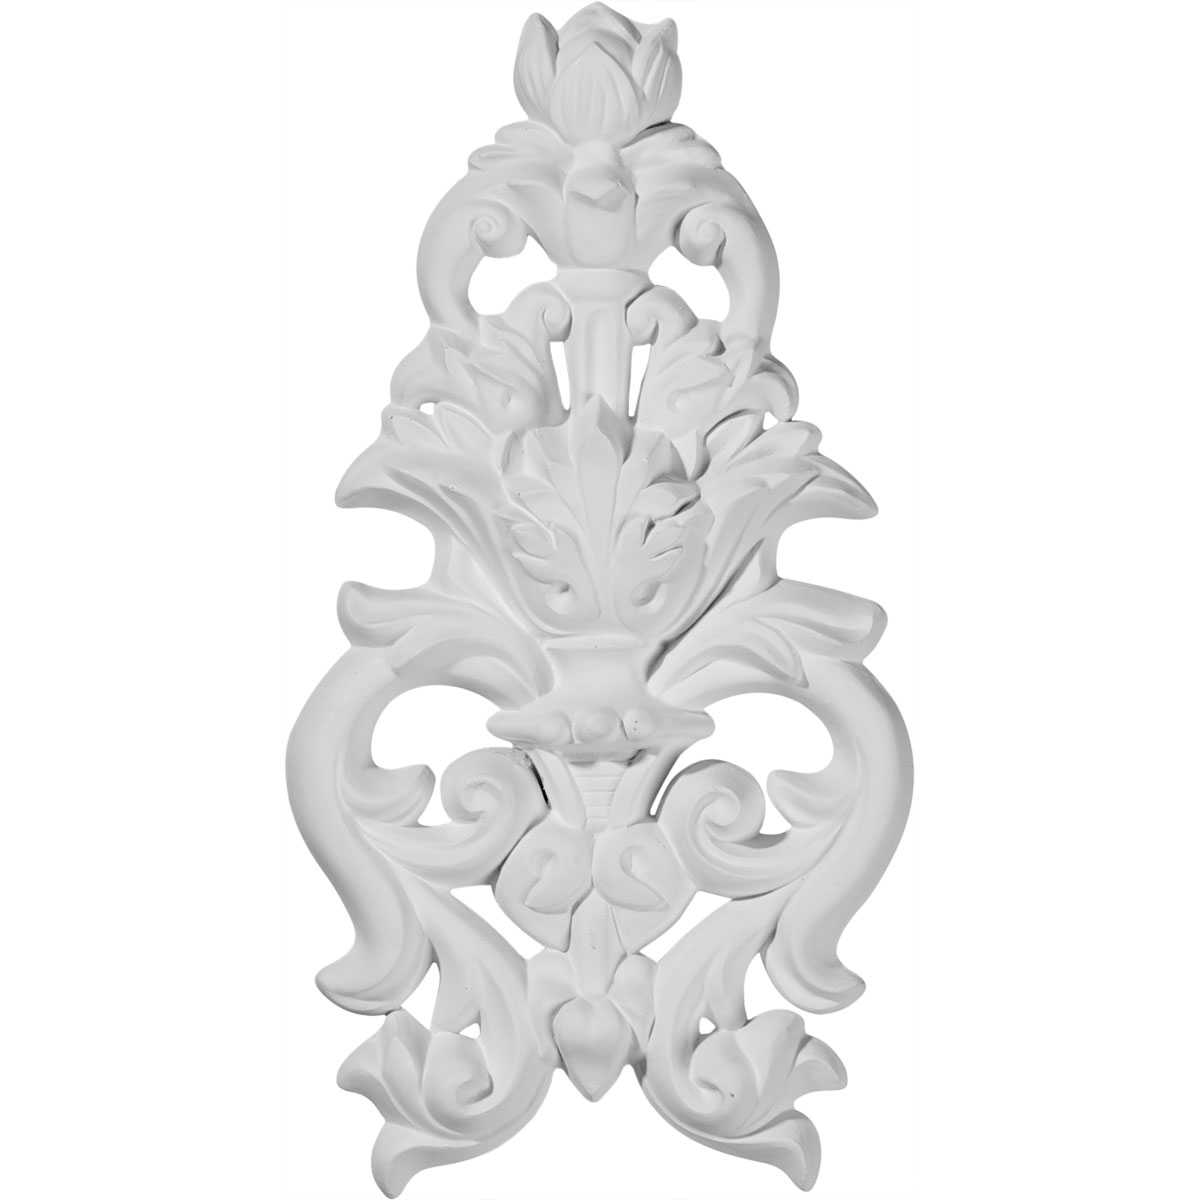 Ekena Millwork Dauphine 9 1/2''H x 4 7/8''W x 1''D Flower and Leaves Drop Onlay